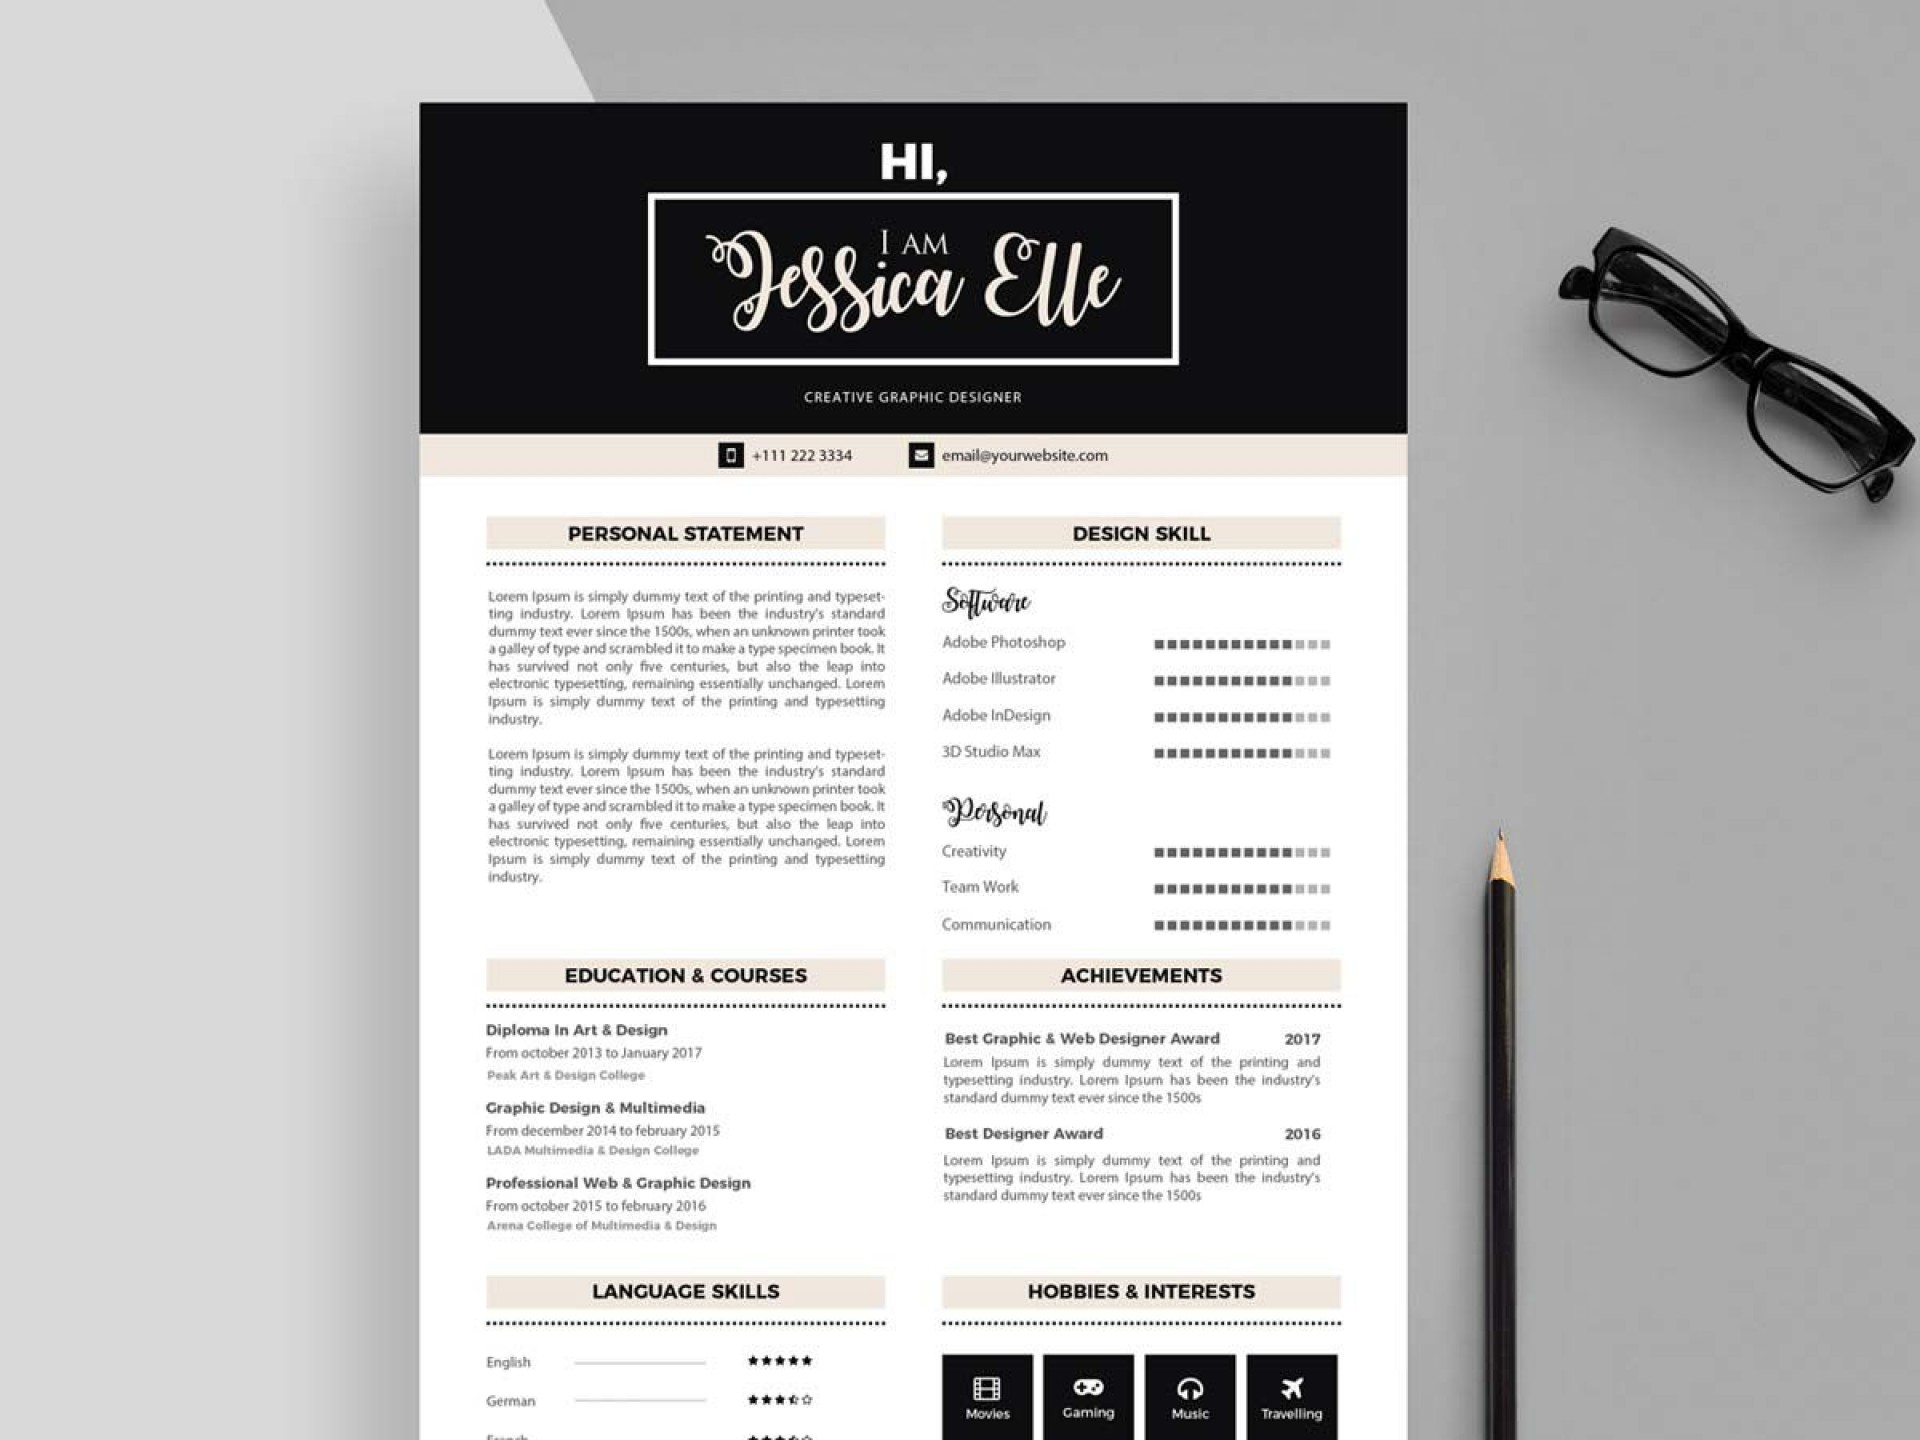 004 Formidable Photoshop Cv Template Free Download Design  Creative Resume Psd Adobe1920